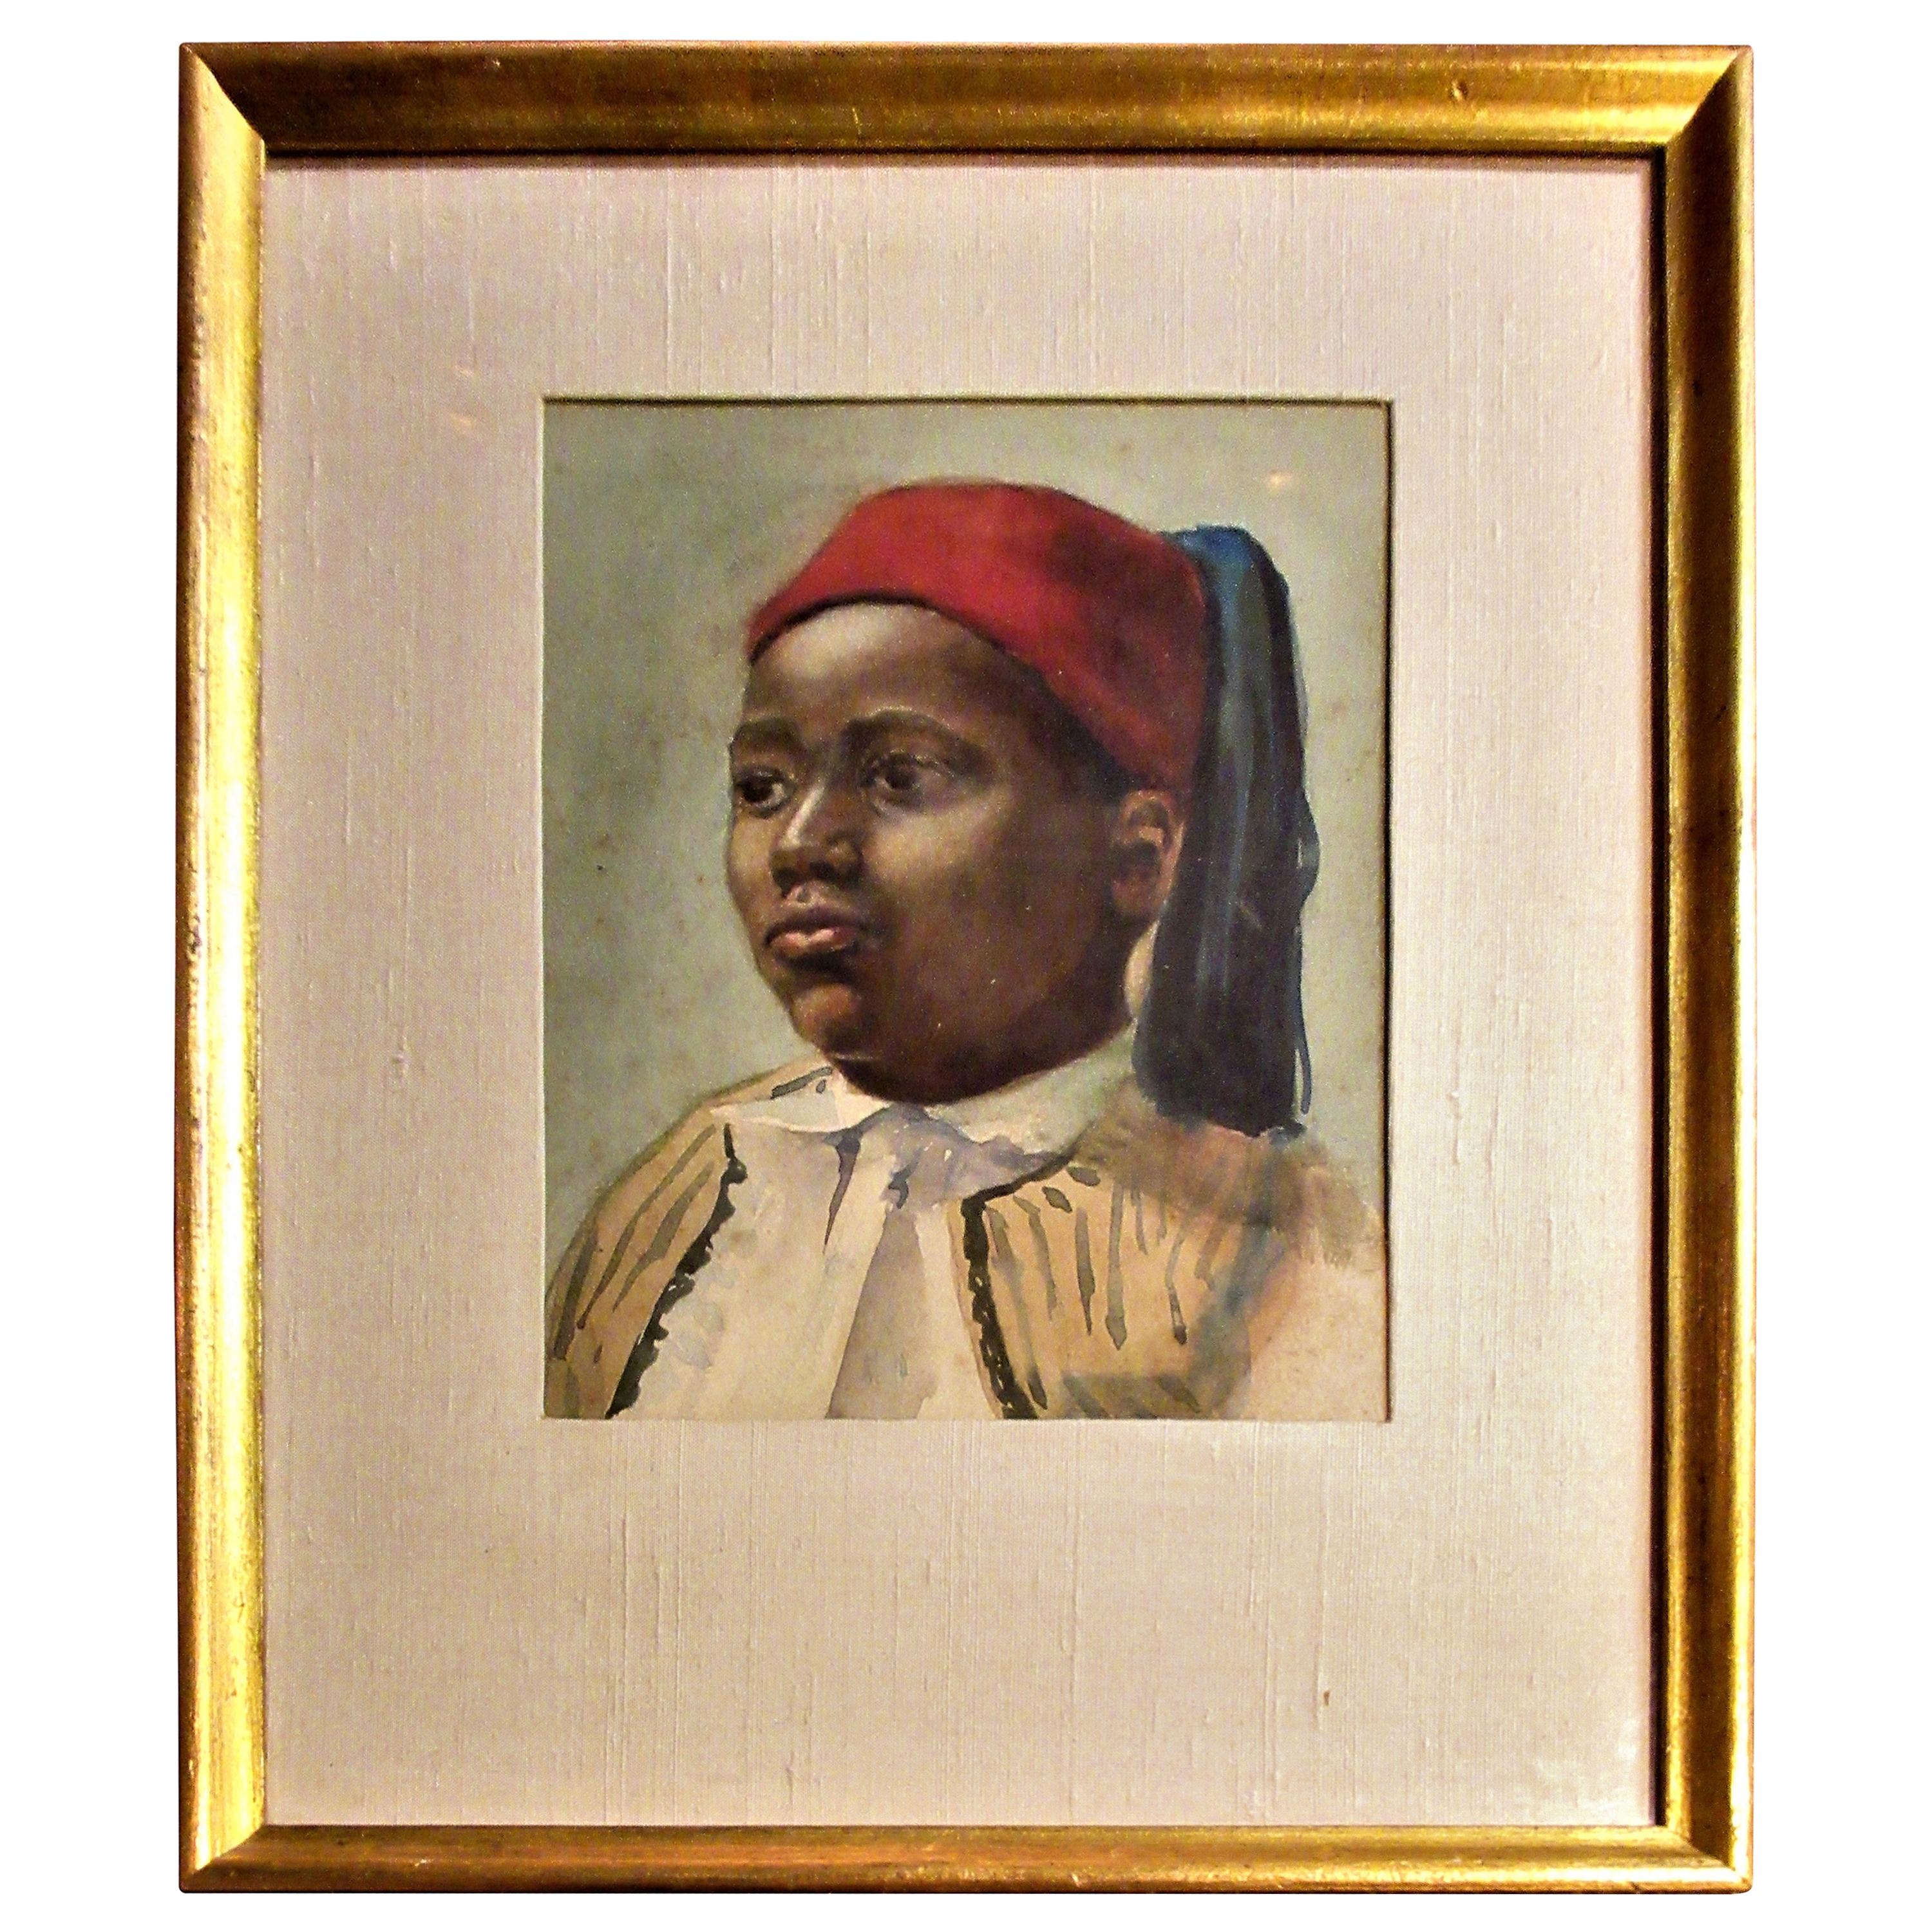 19th Century Orientalist Painting of a Young Boy